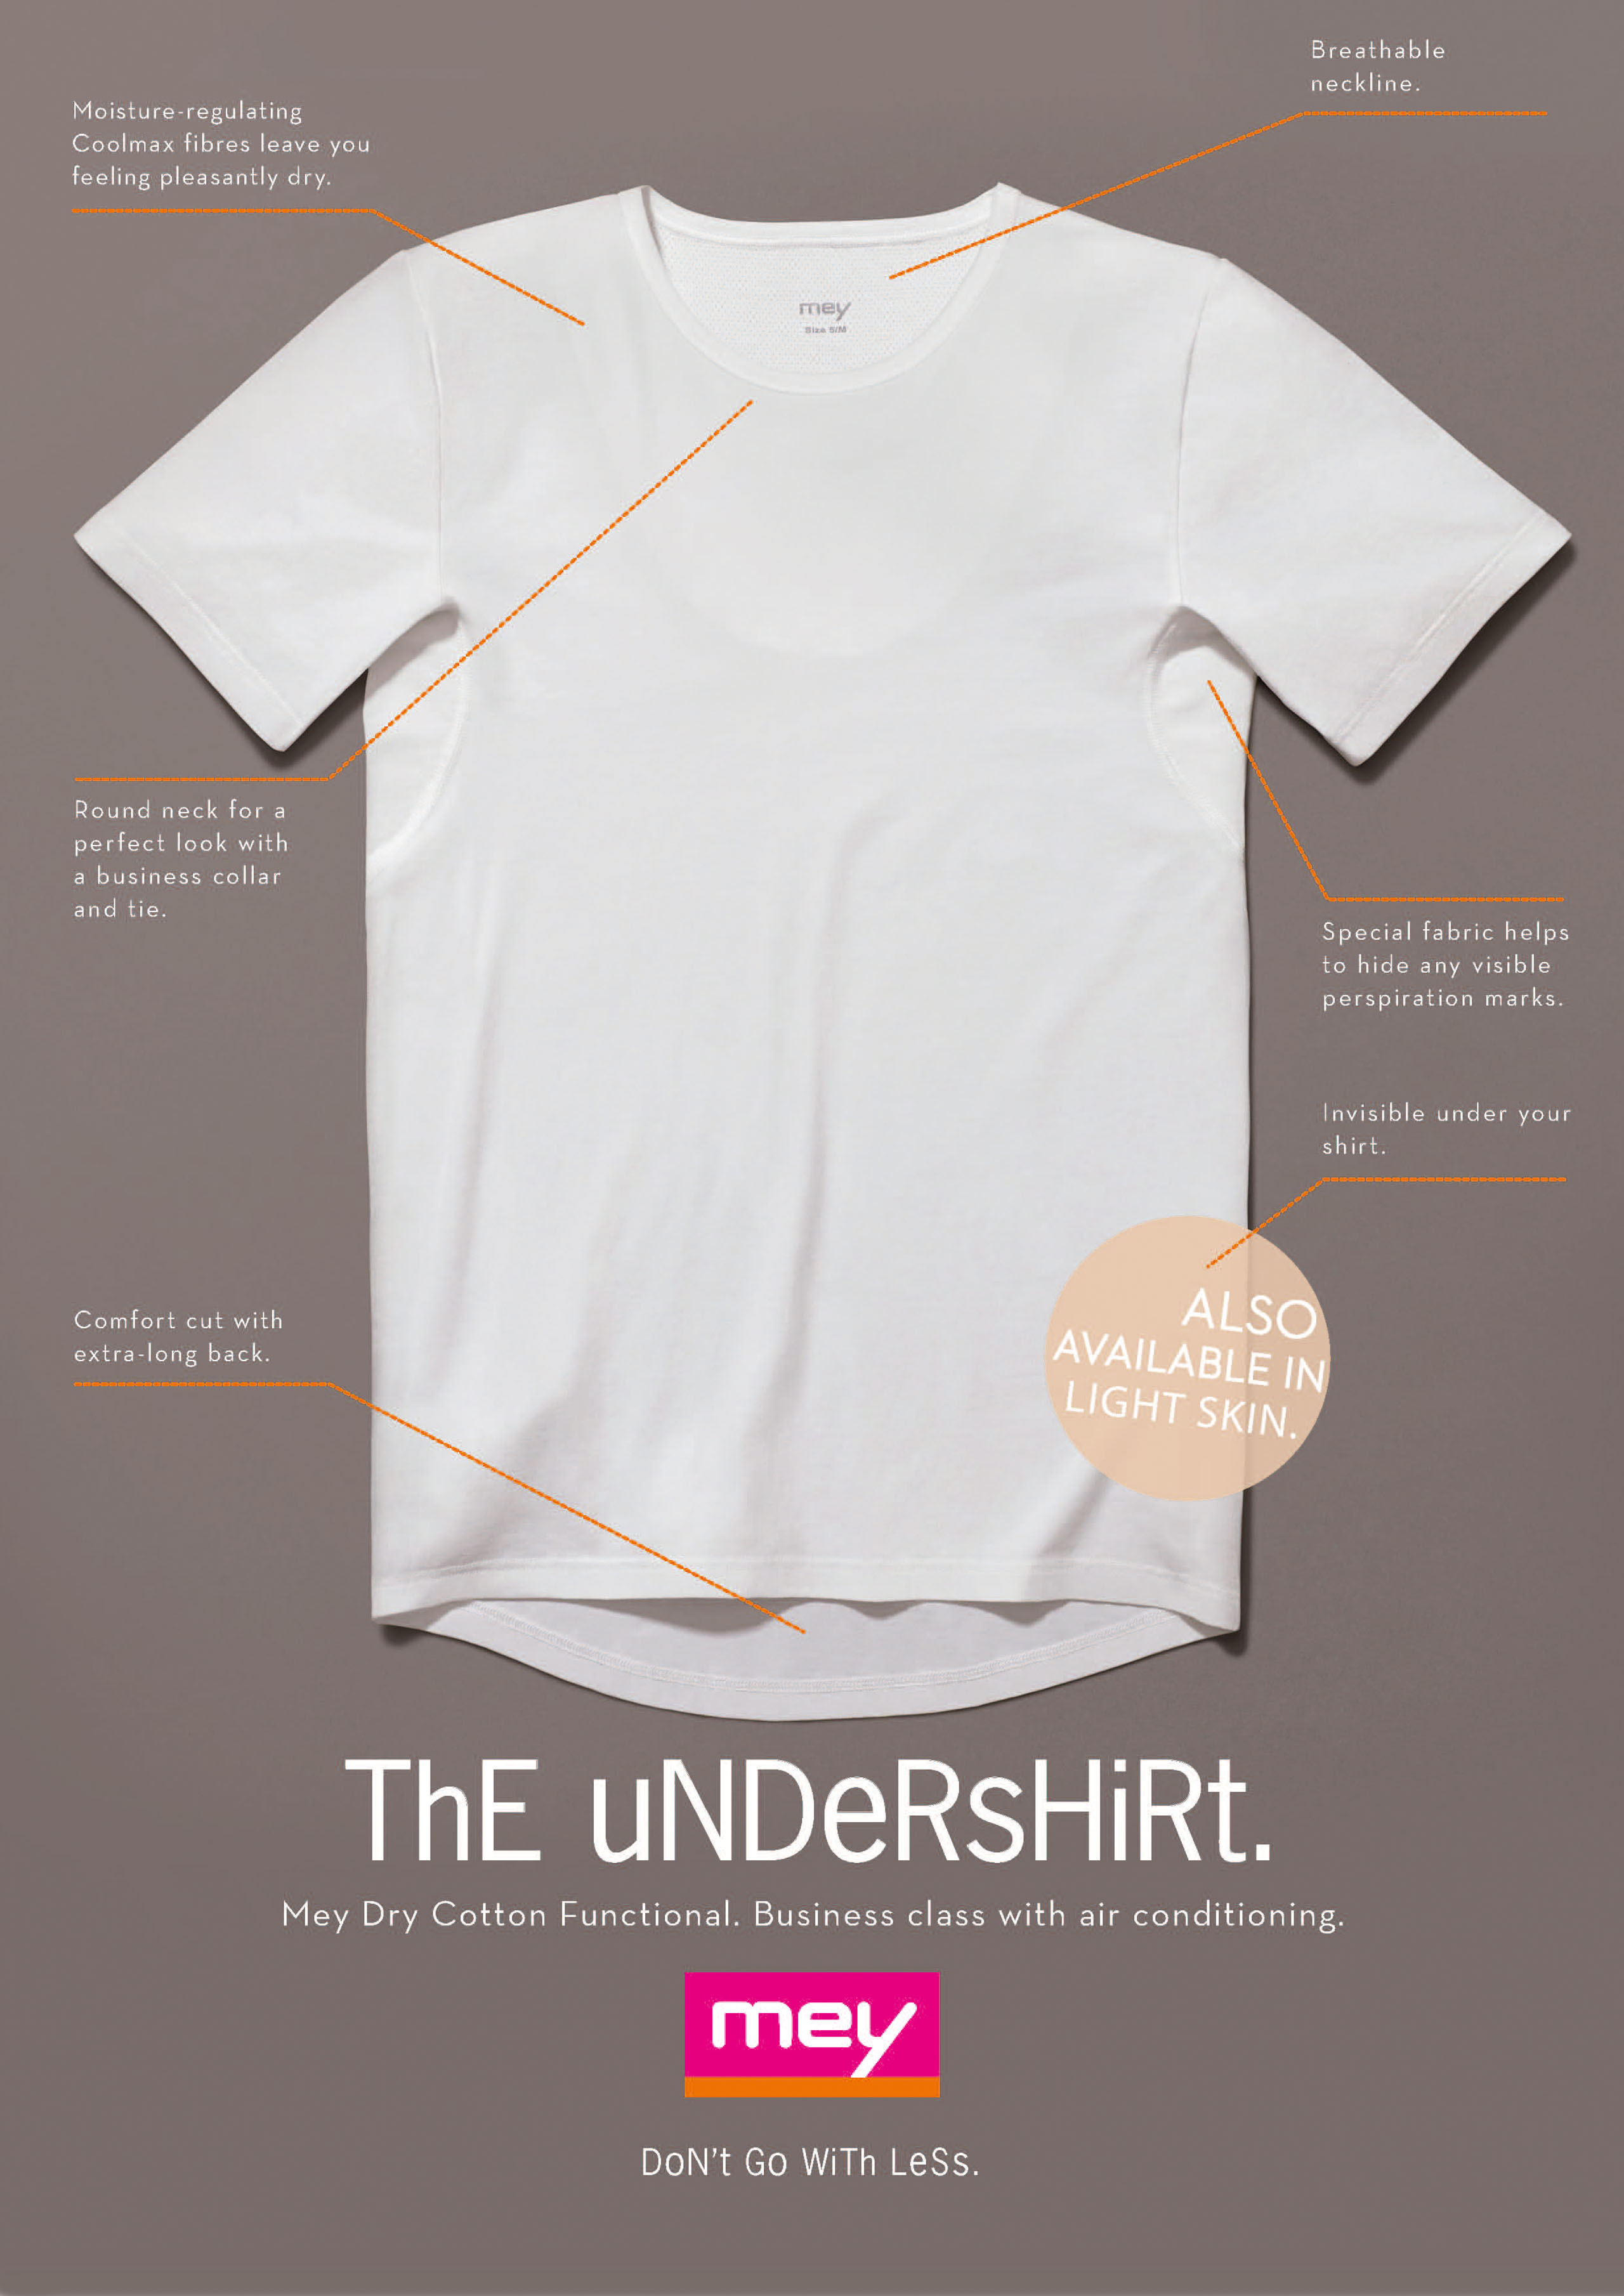 advertisement for the Undershirt: an innovation for businessmen, no sweat patches or odour under the shirt, presentation of the shirt with benefits | mey®